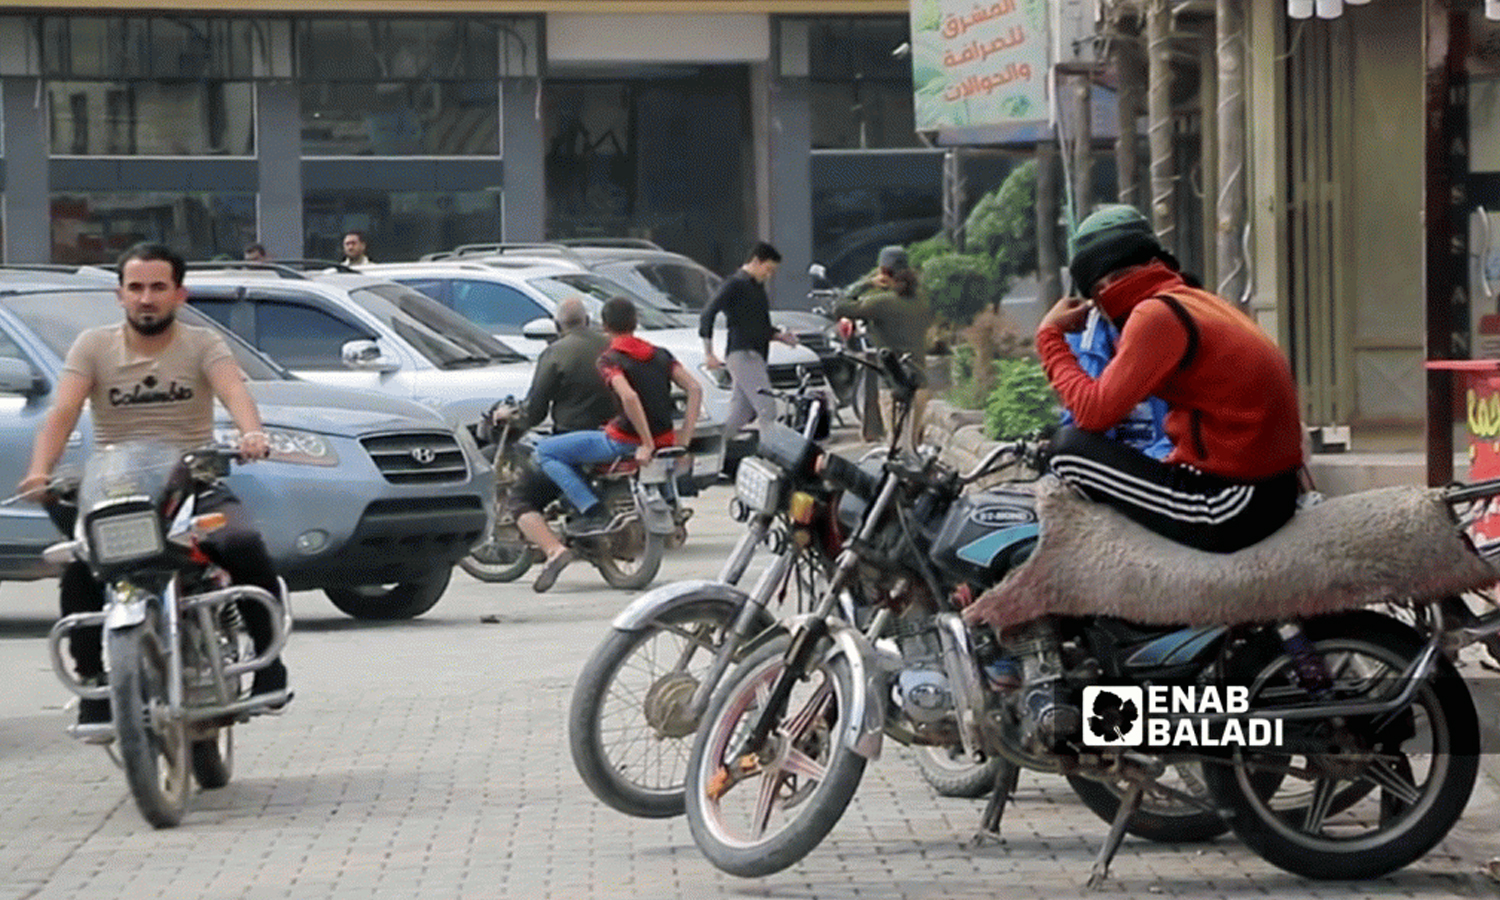 Motorcycles in Azaz city in the northern Aleppo countryside - 23 September 2021 (Enab Baladi / Walid Othman)